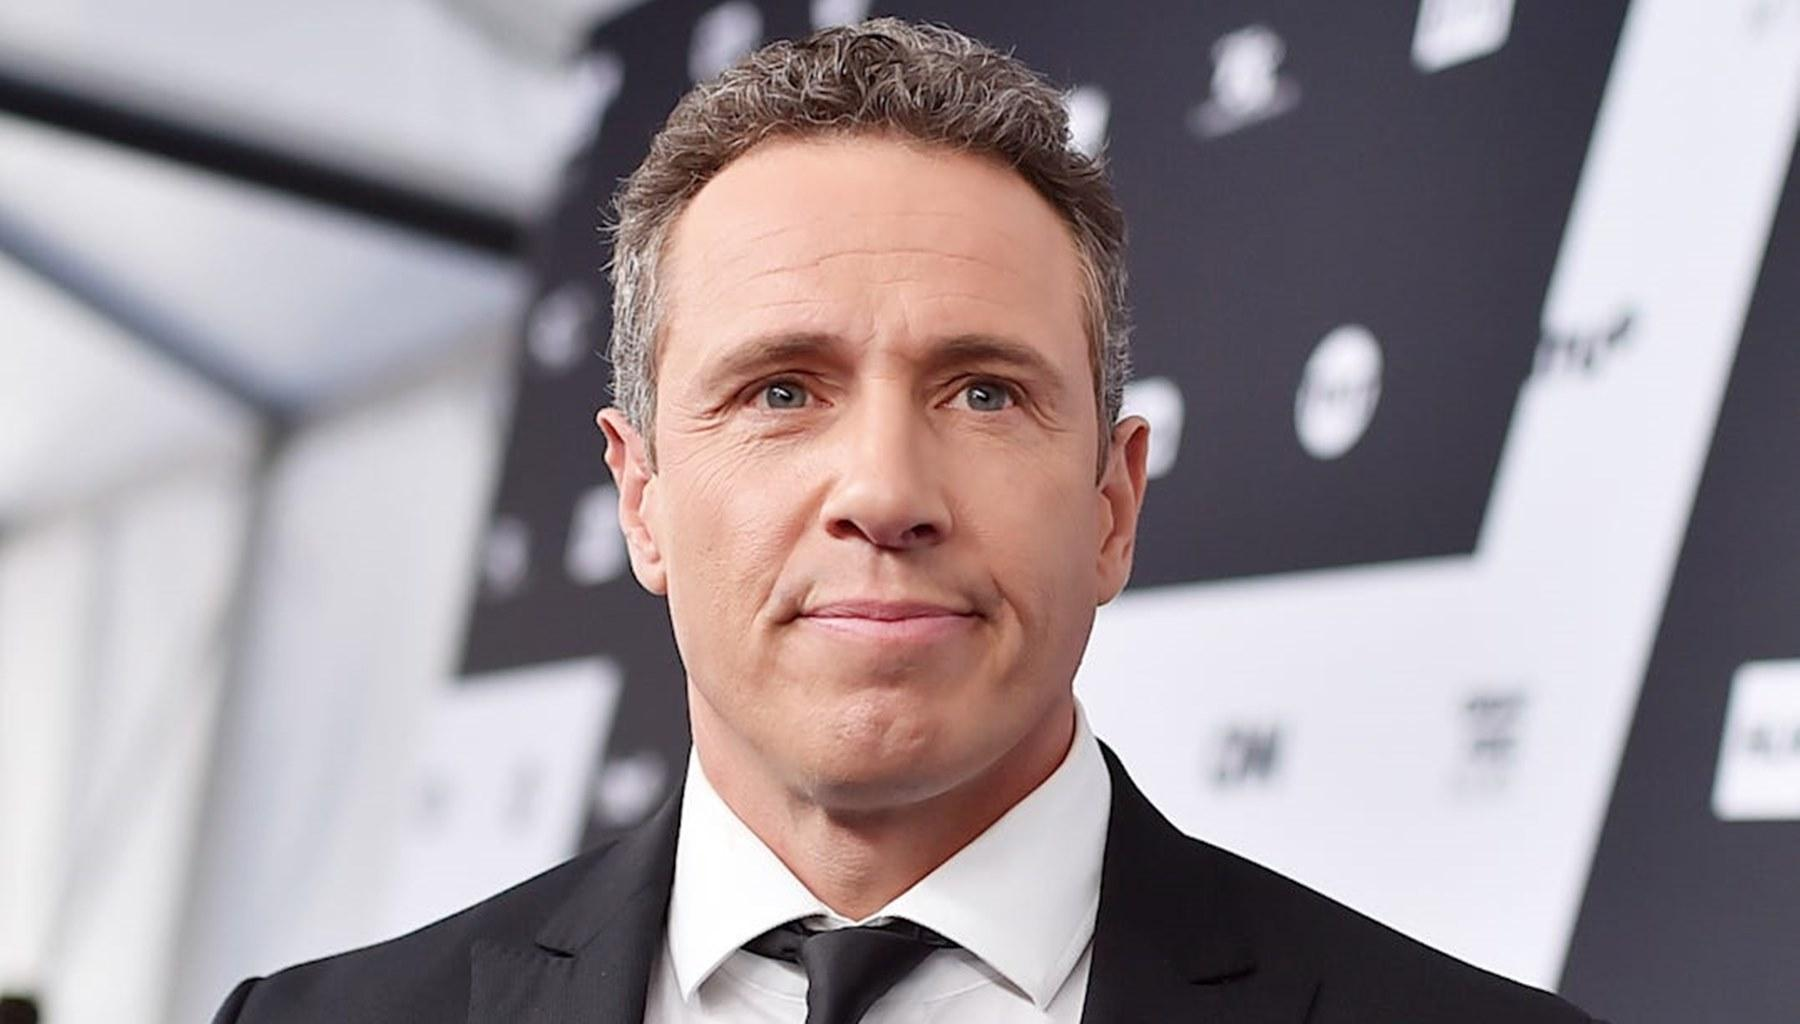 Chris Cuomo Bashes CNN And President Donald Trump In Epic Rant After Getting Infected By The Coronavirus